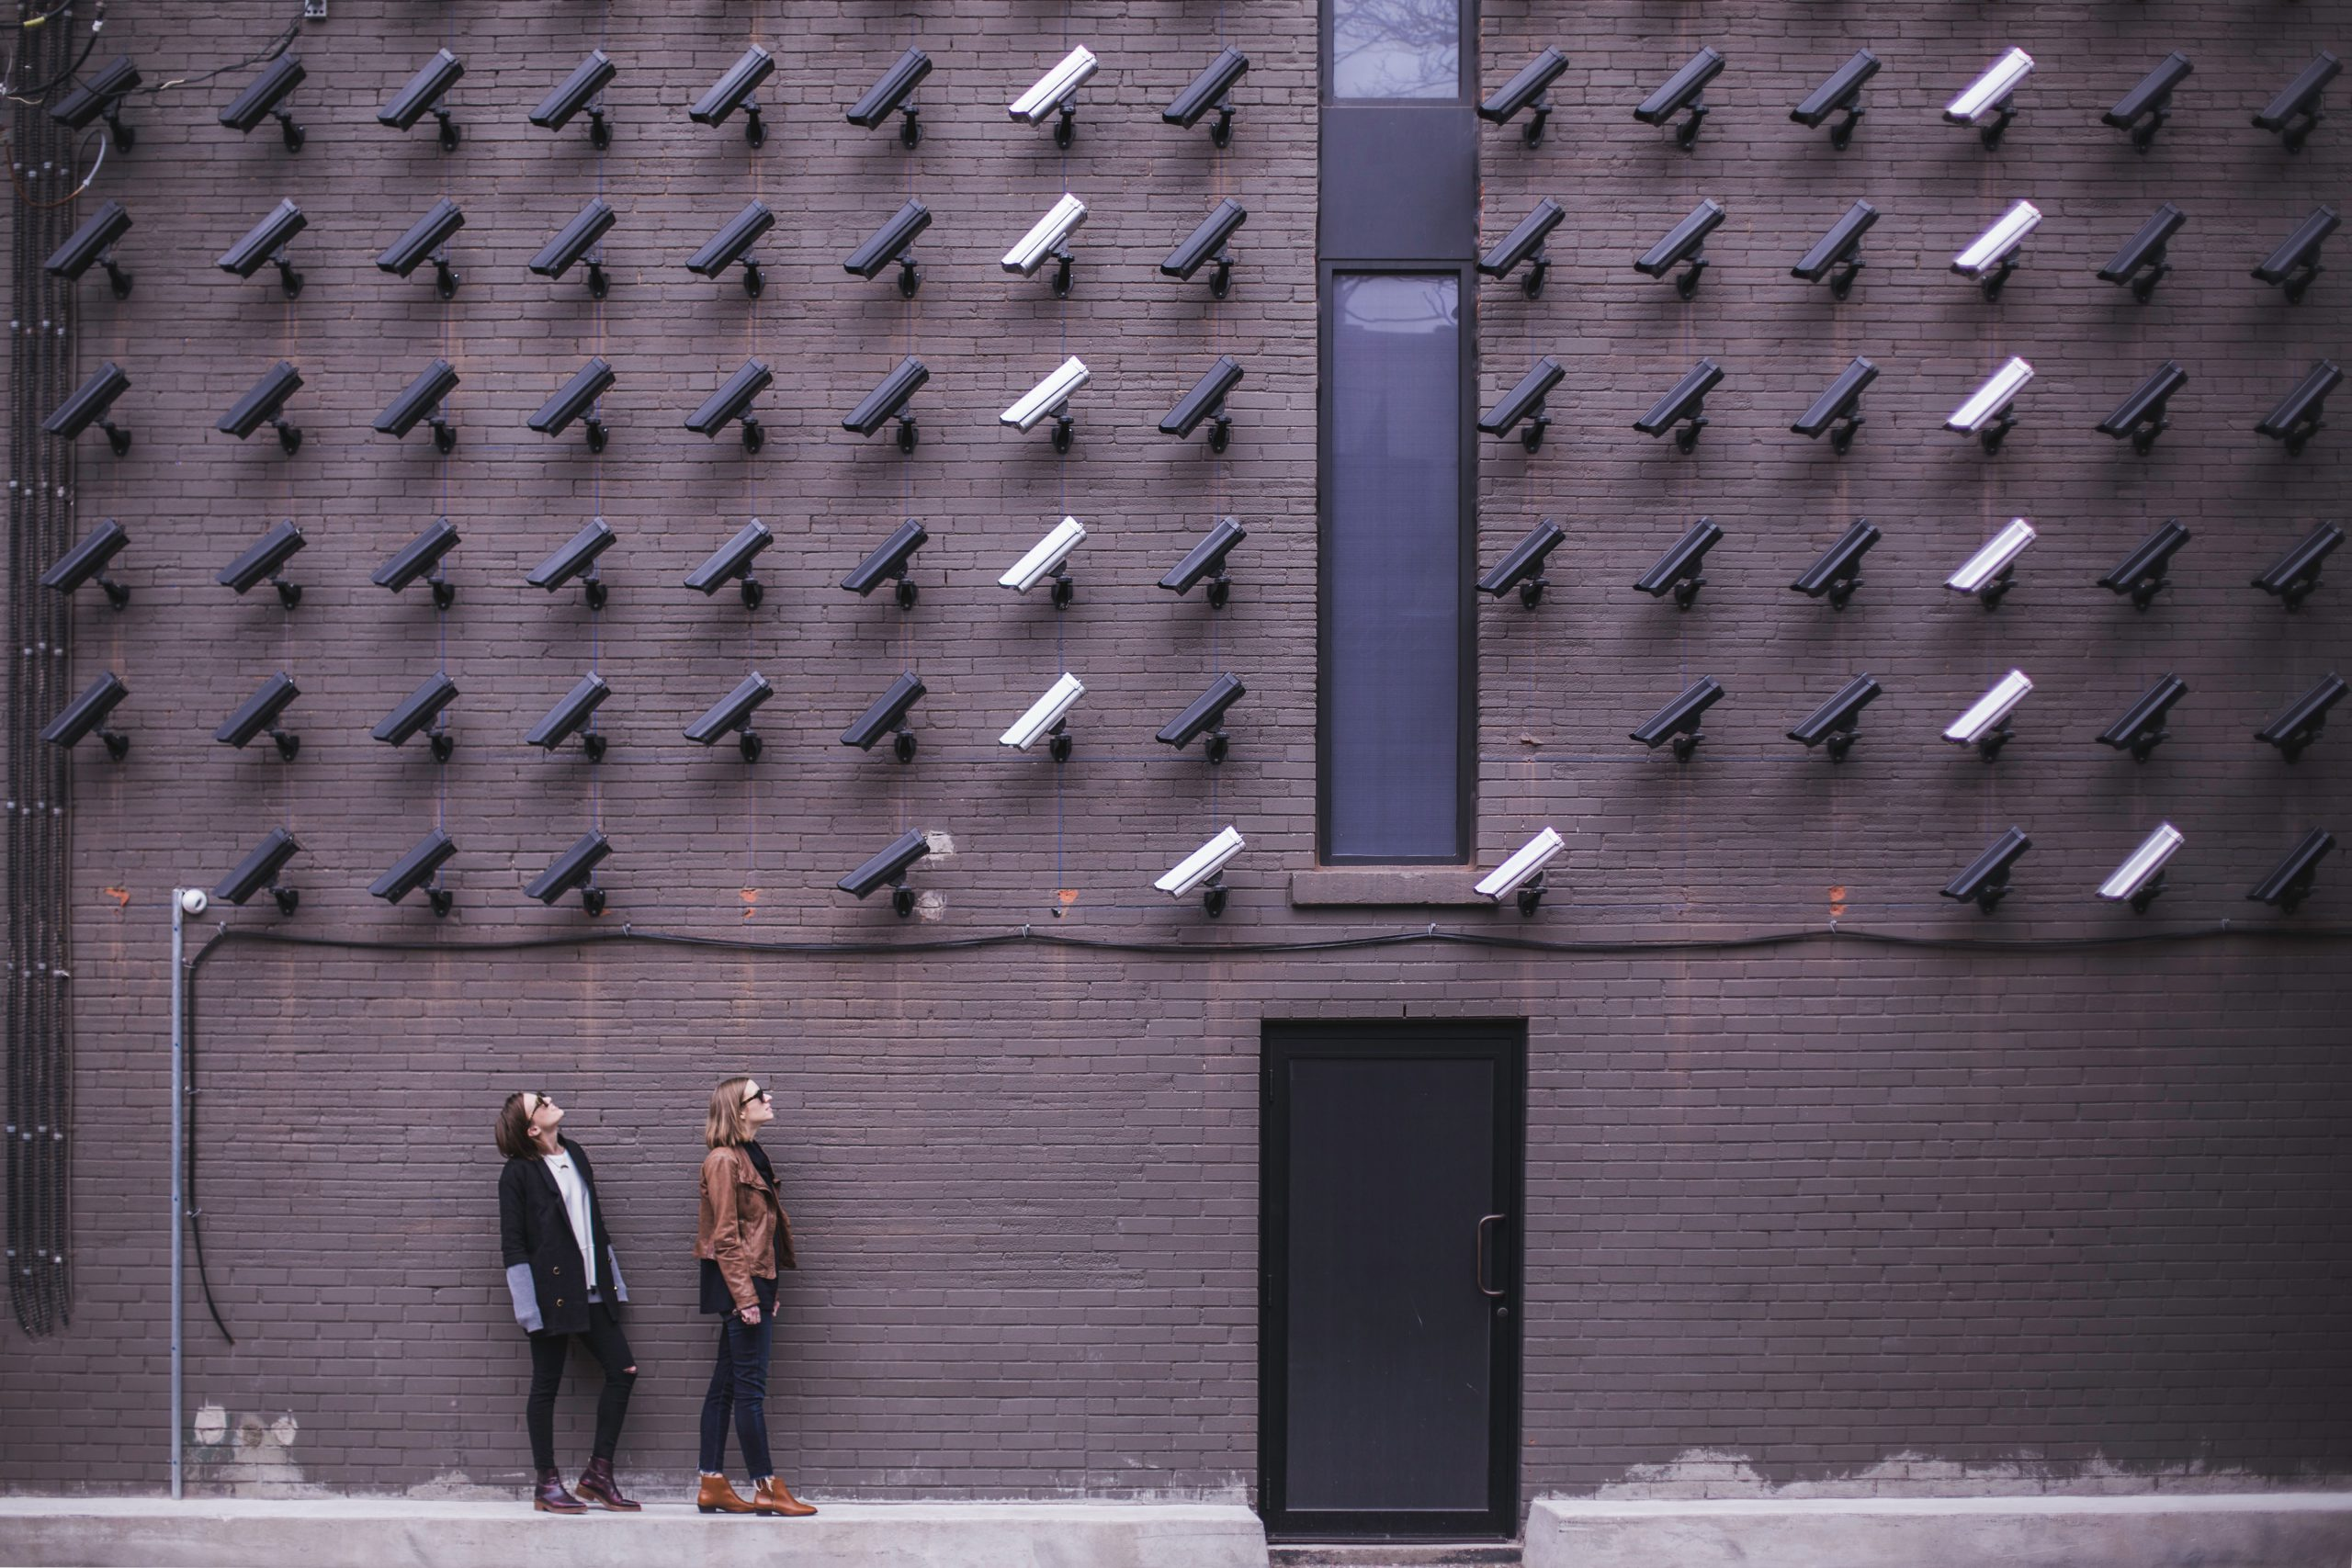 cameras watching 2 women in the city, no privacy